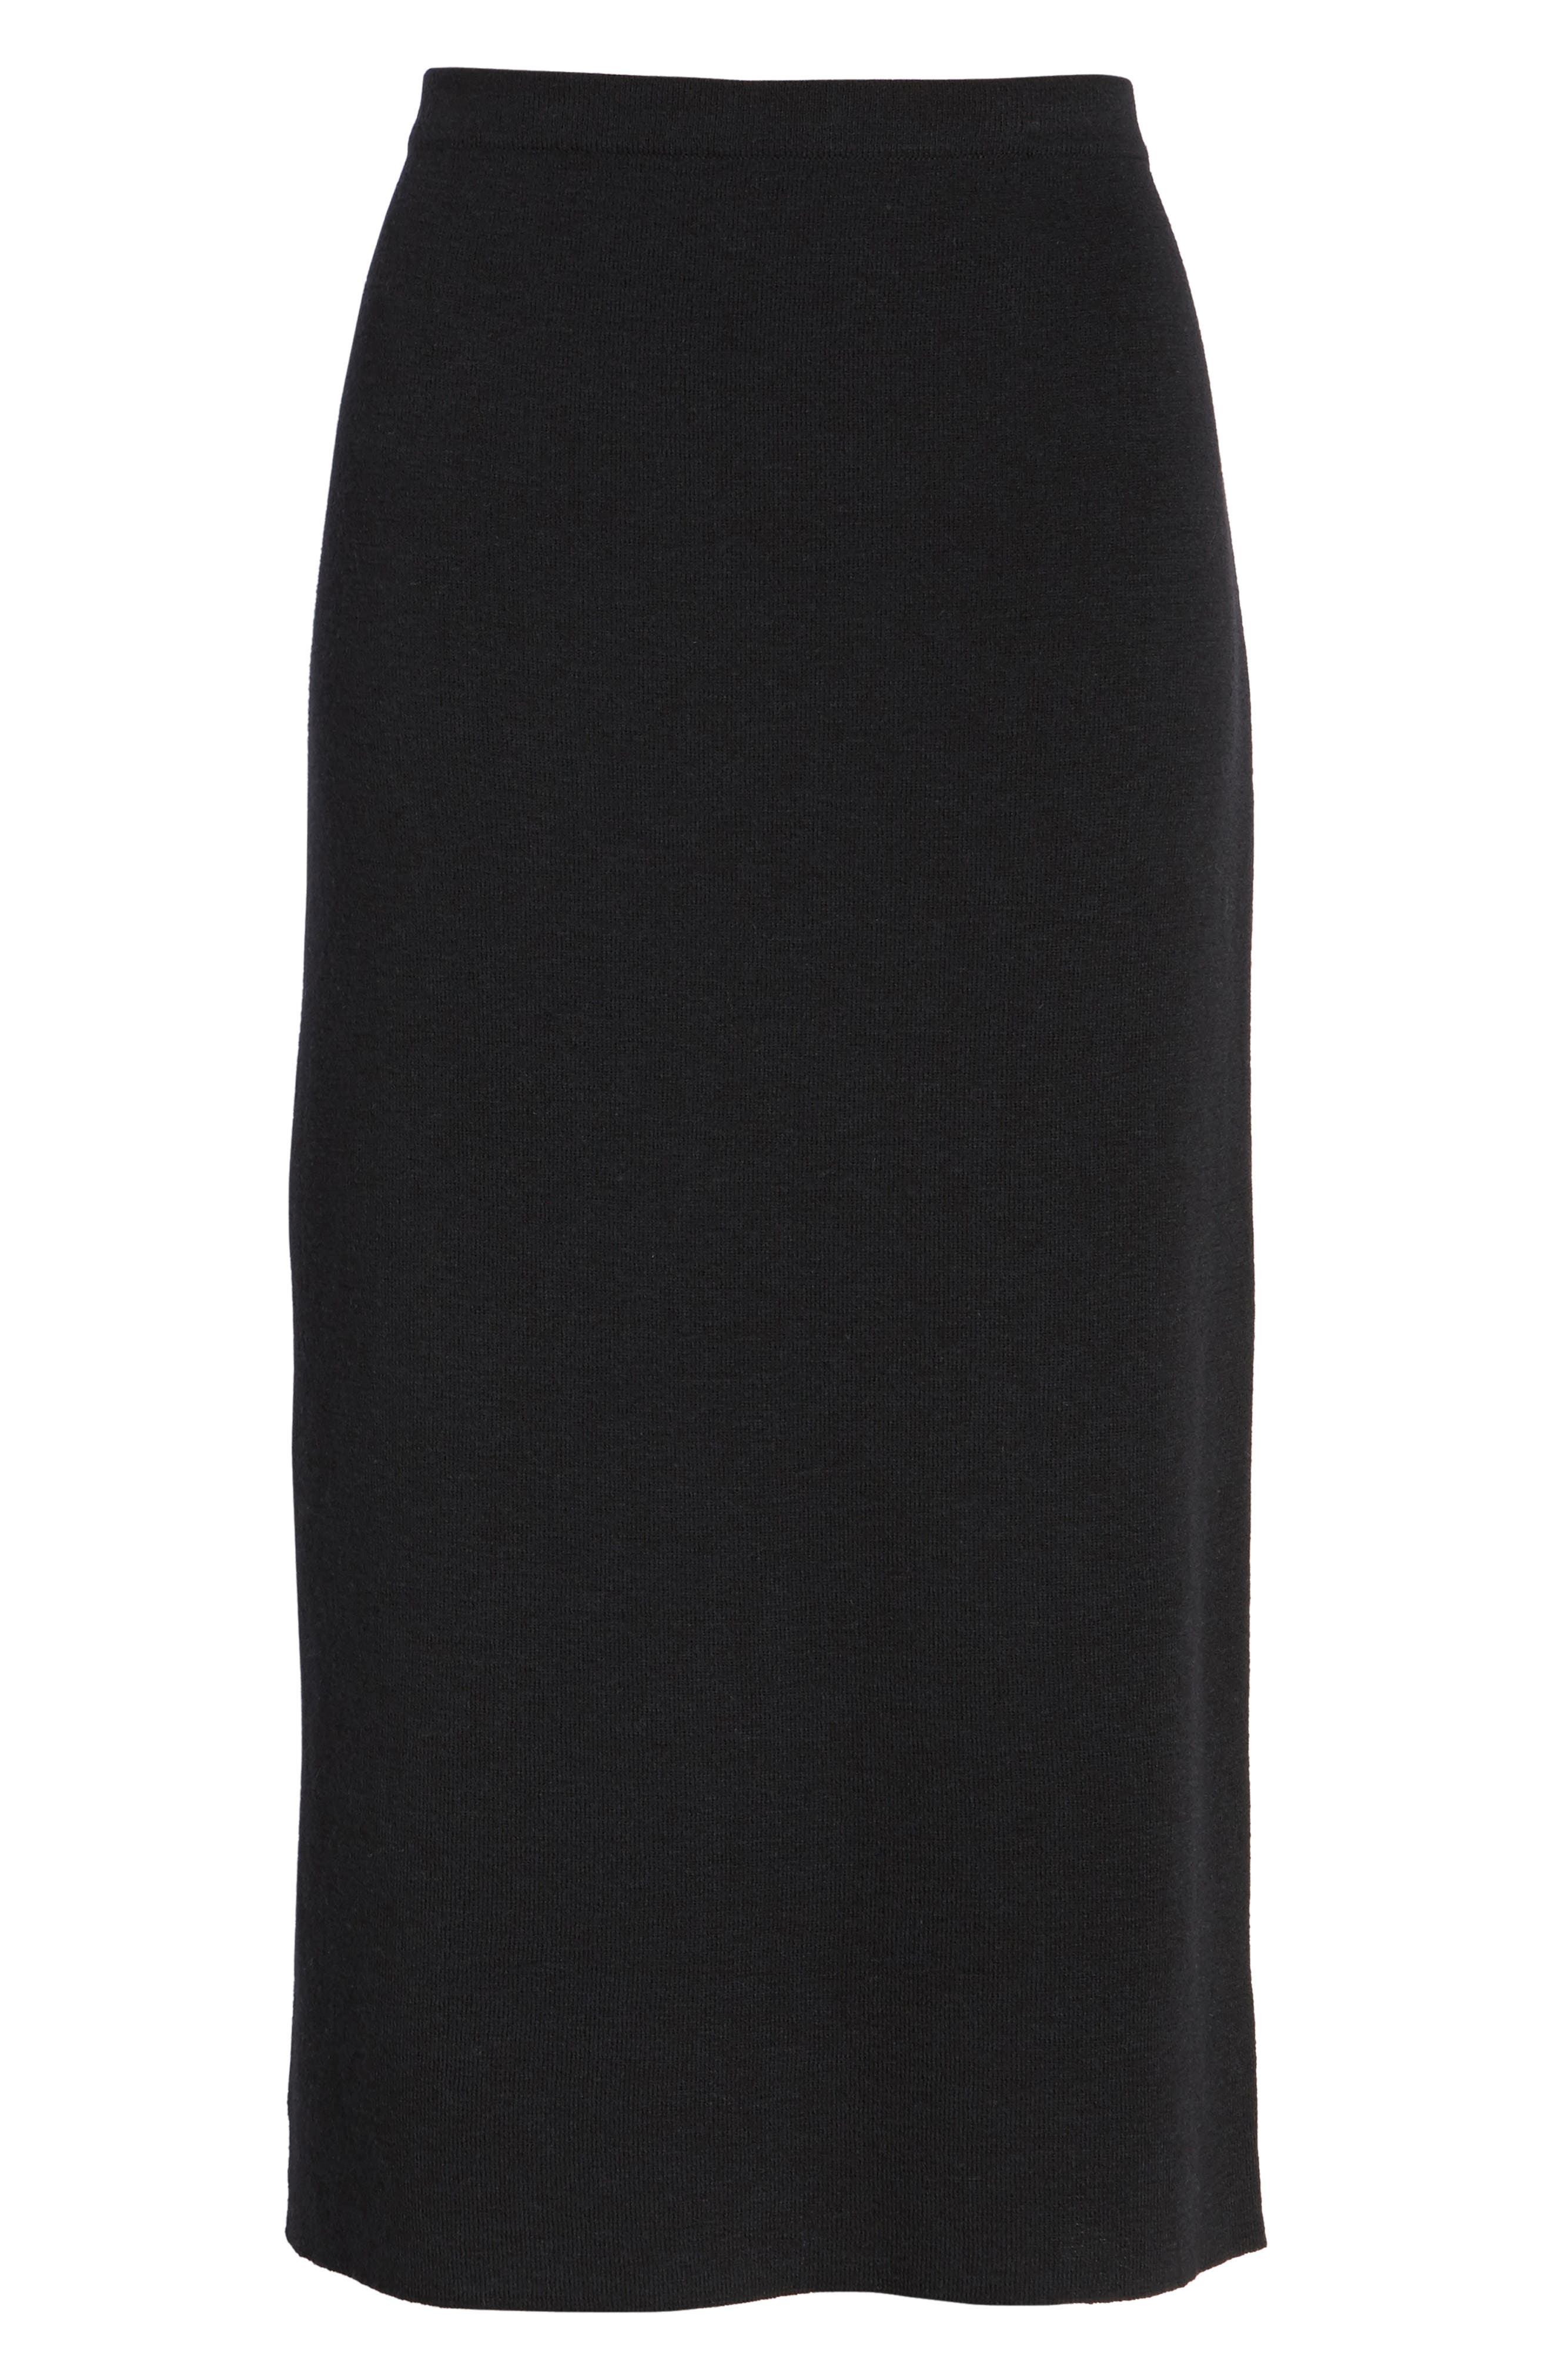 Alternate Image 1 Selected - Eileen Fisher Wool Knit Pencil Skirt